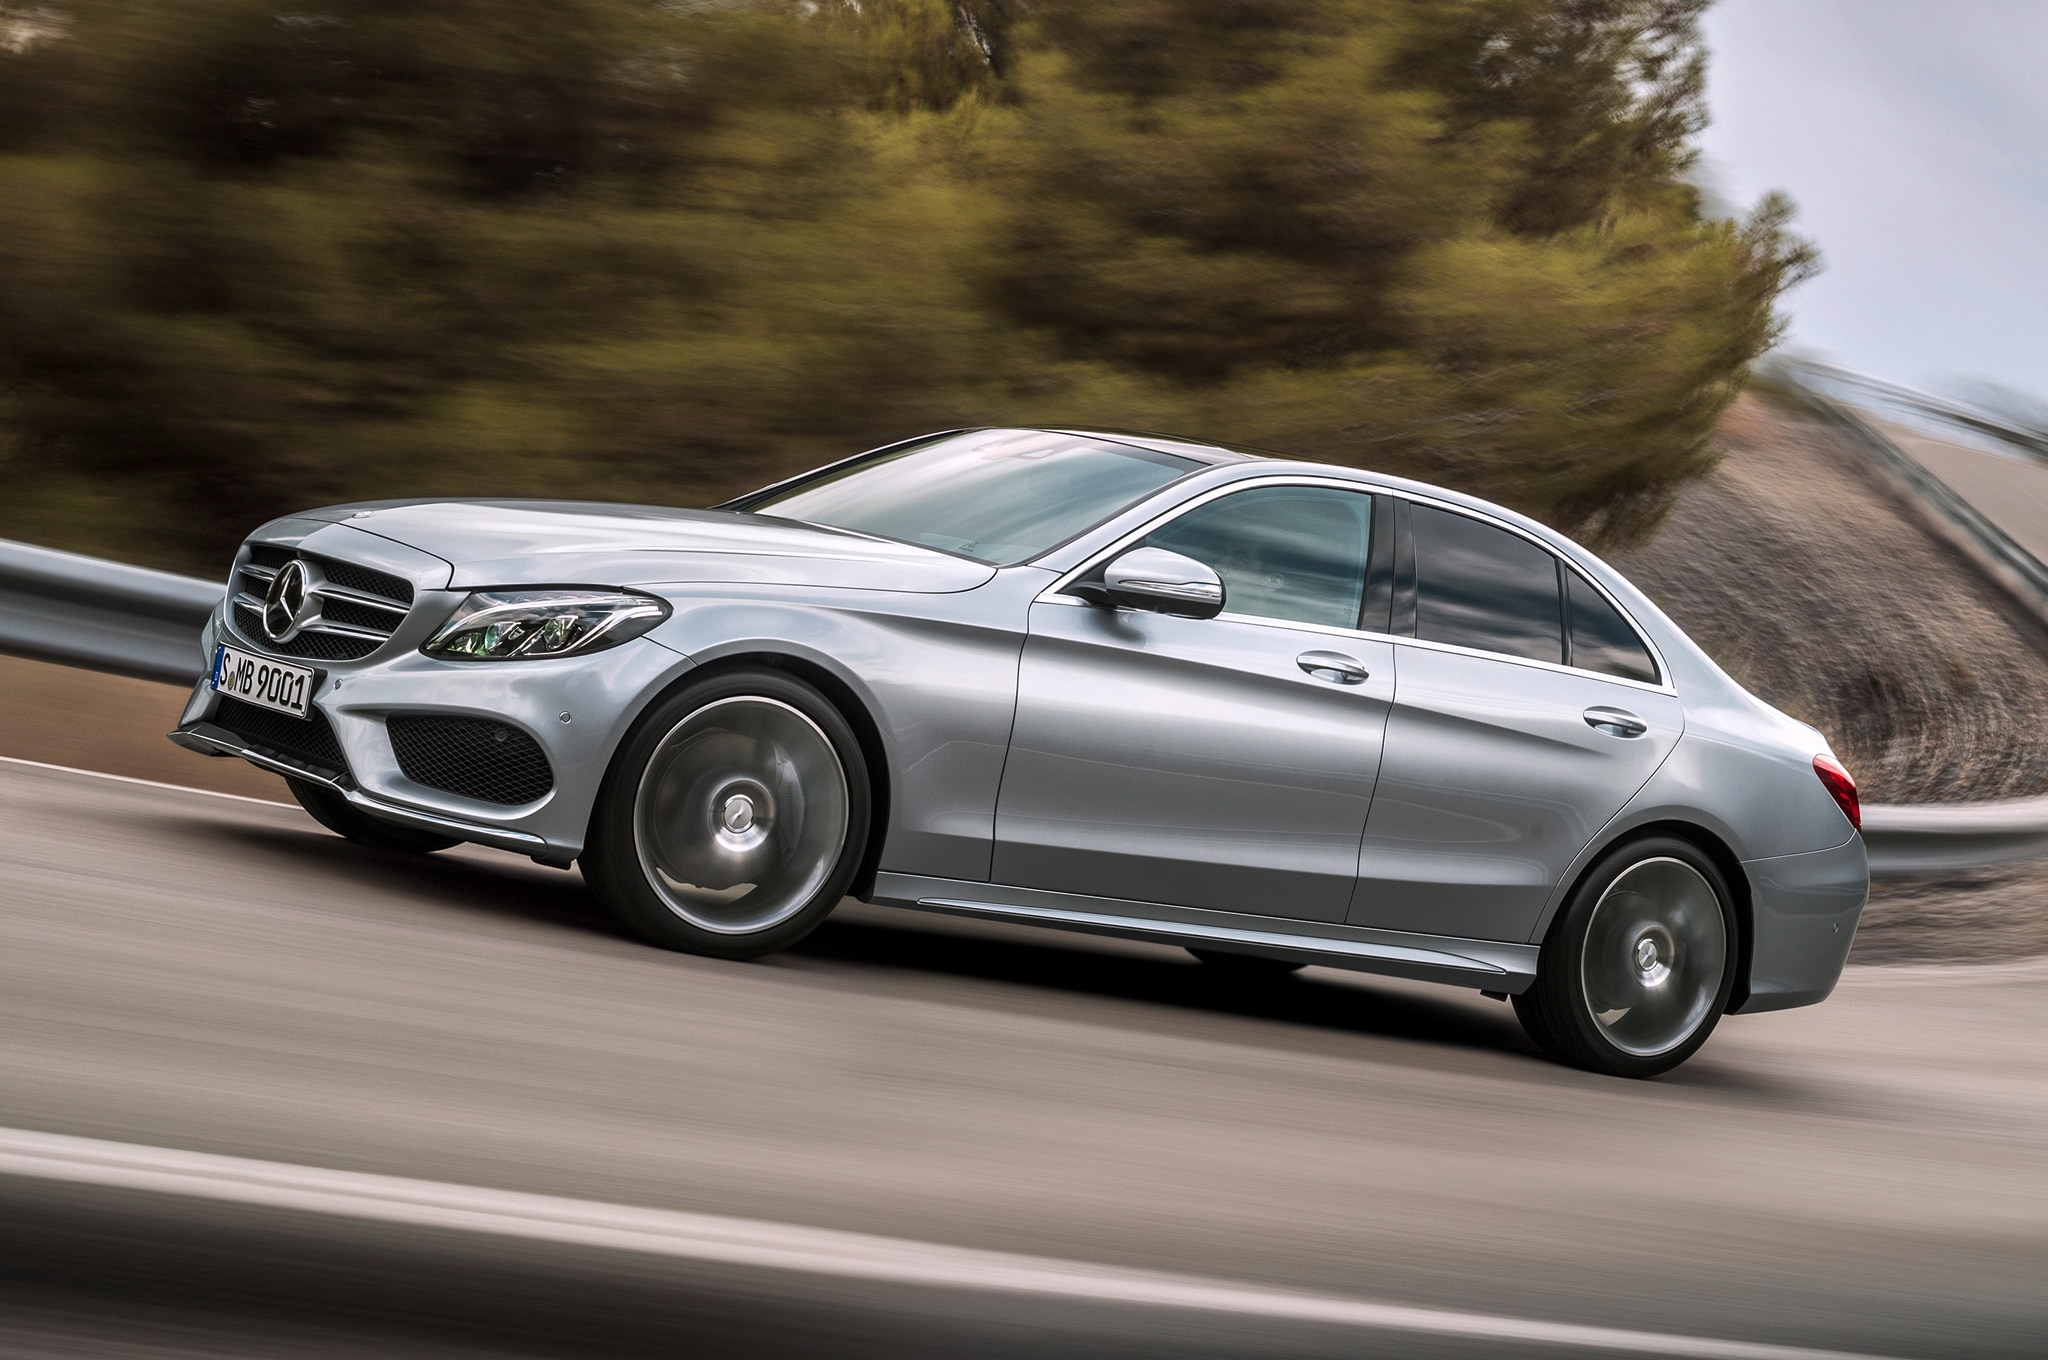 2015 Mercedes Benz C Class Front View In Motion